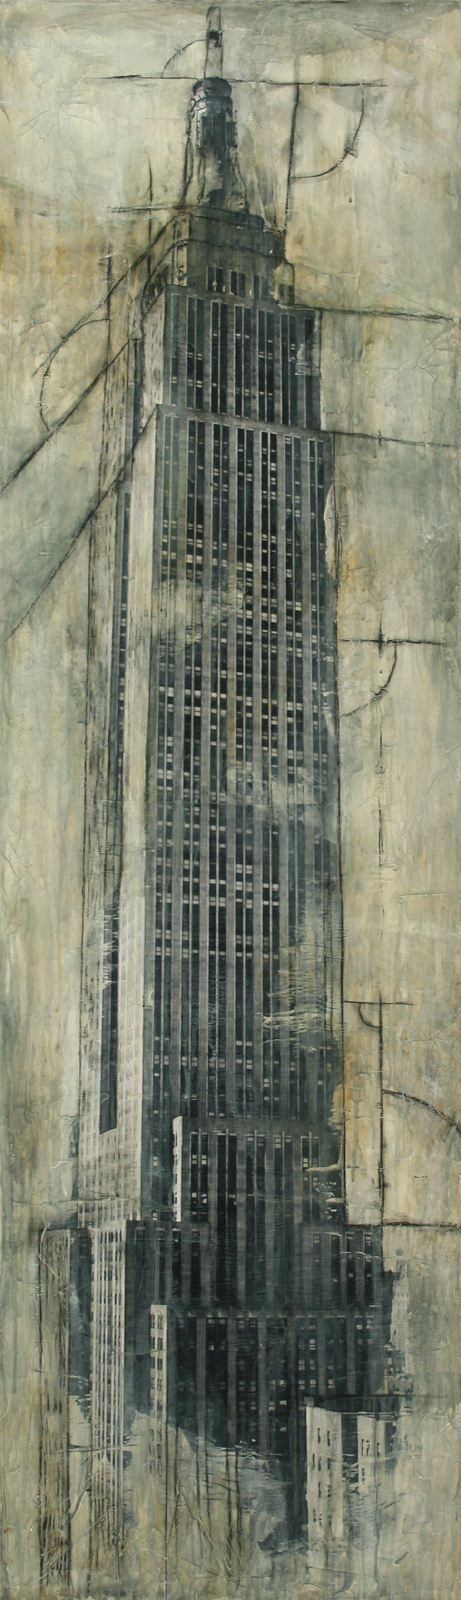 "Empire State Building  Mixed Media on Canvas 18""x62"", 2009 Private Collection"